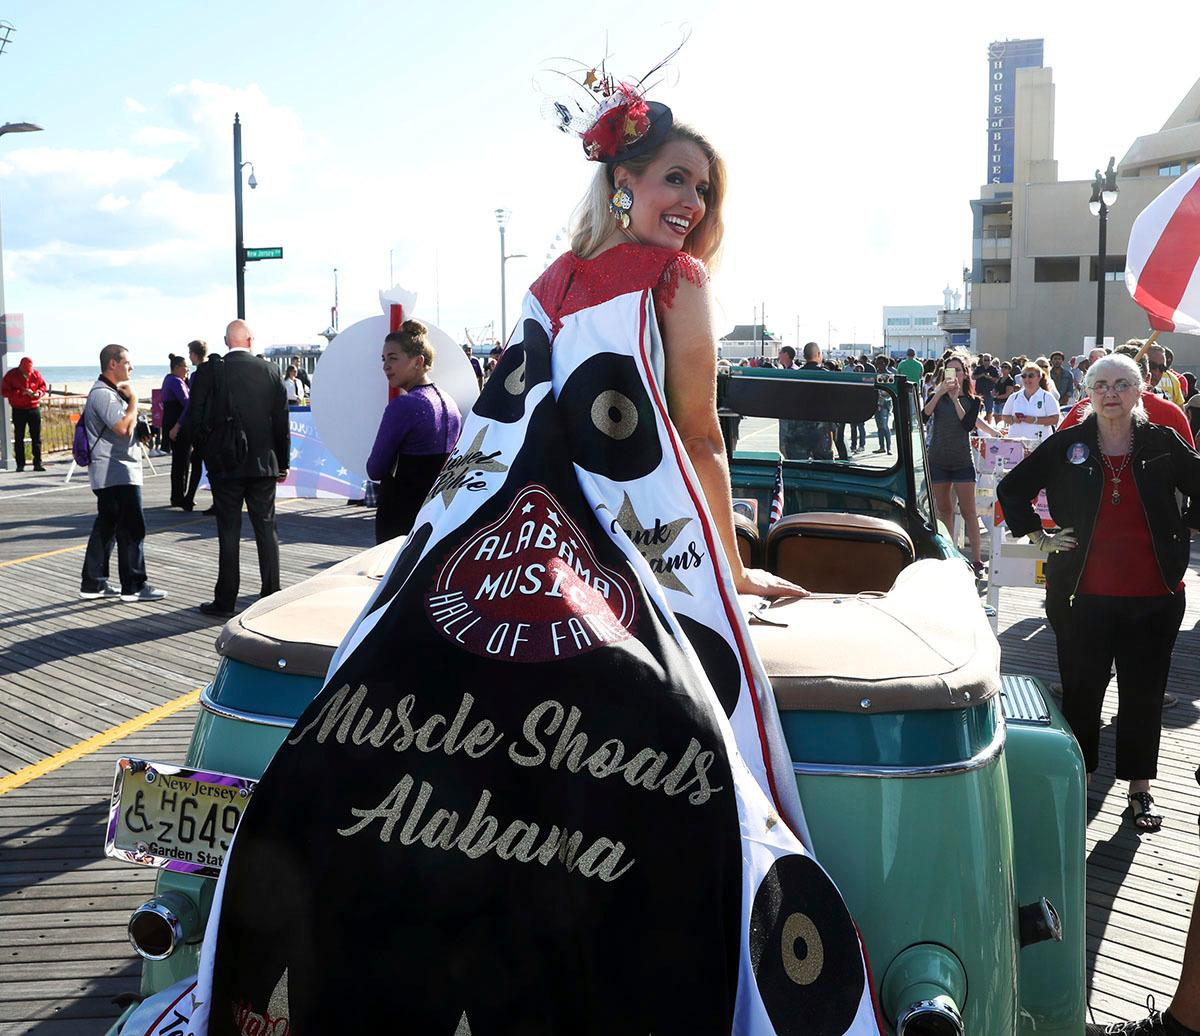 Miss Alabama 2017 Jessica Procter show the crowd her shoe during a parade on the Atlantic City, N.J., Boardwalk Saturday, Sept 9, 2017. (Edward Lea/The Press of Atlantic City via AP)